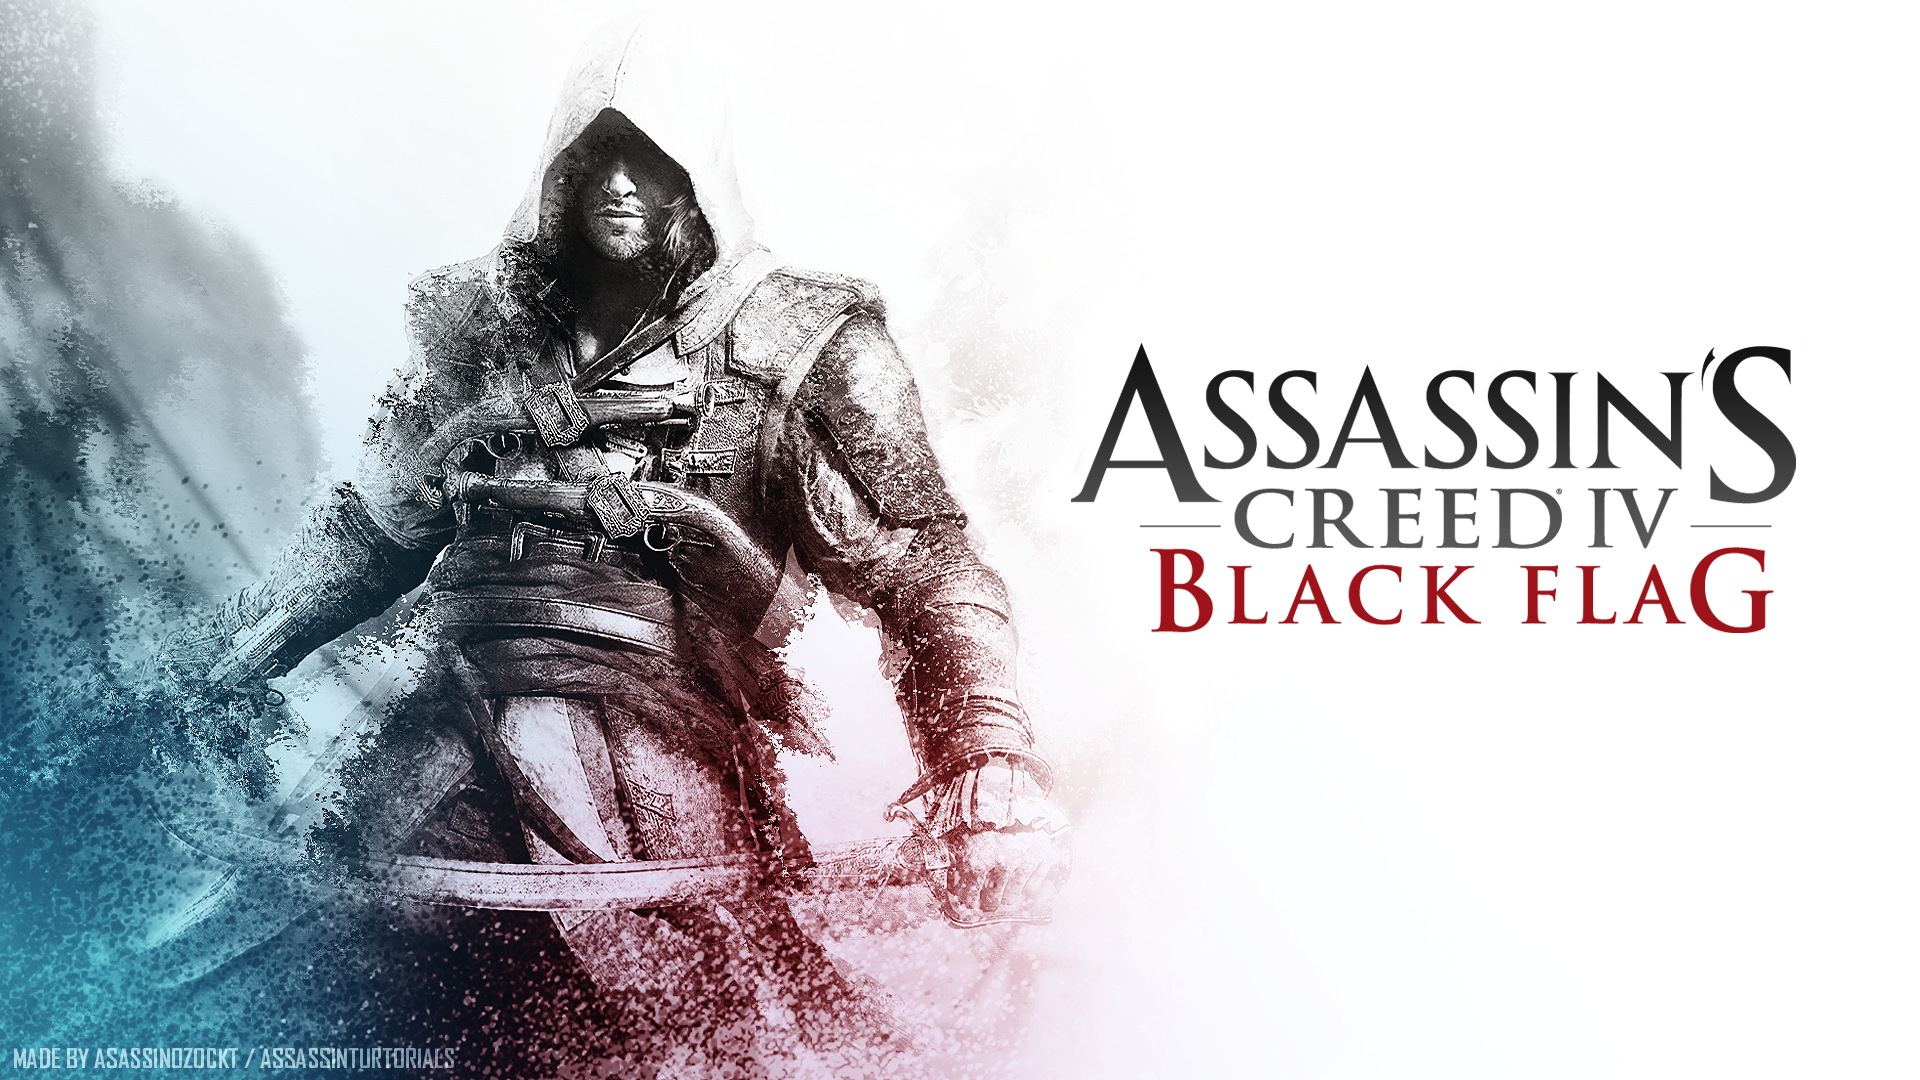 Assassin S Creed Iv Black Flag Wallpaper By Assassinturtorials On